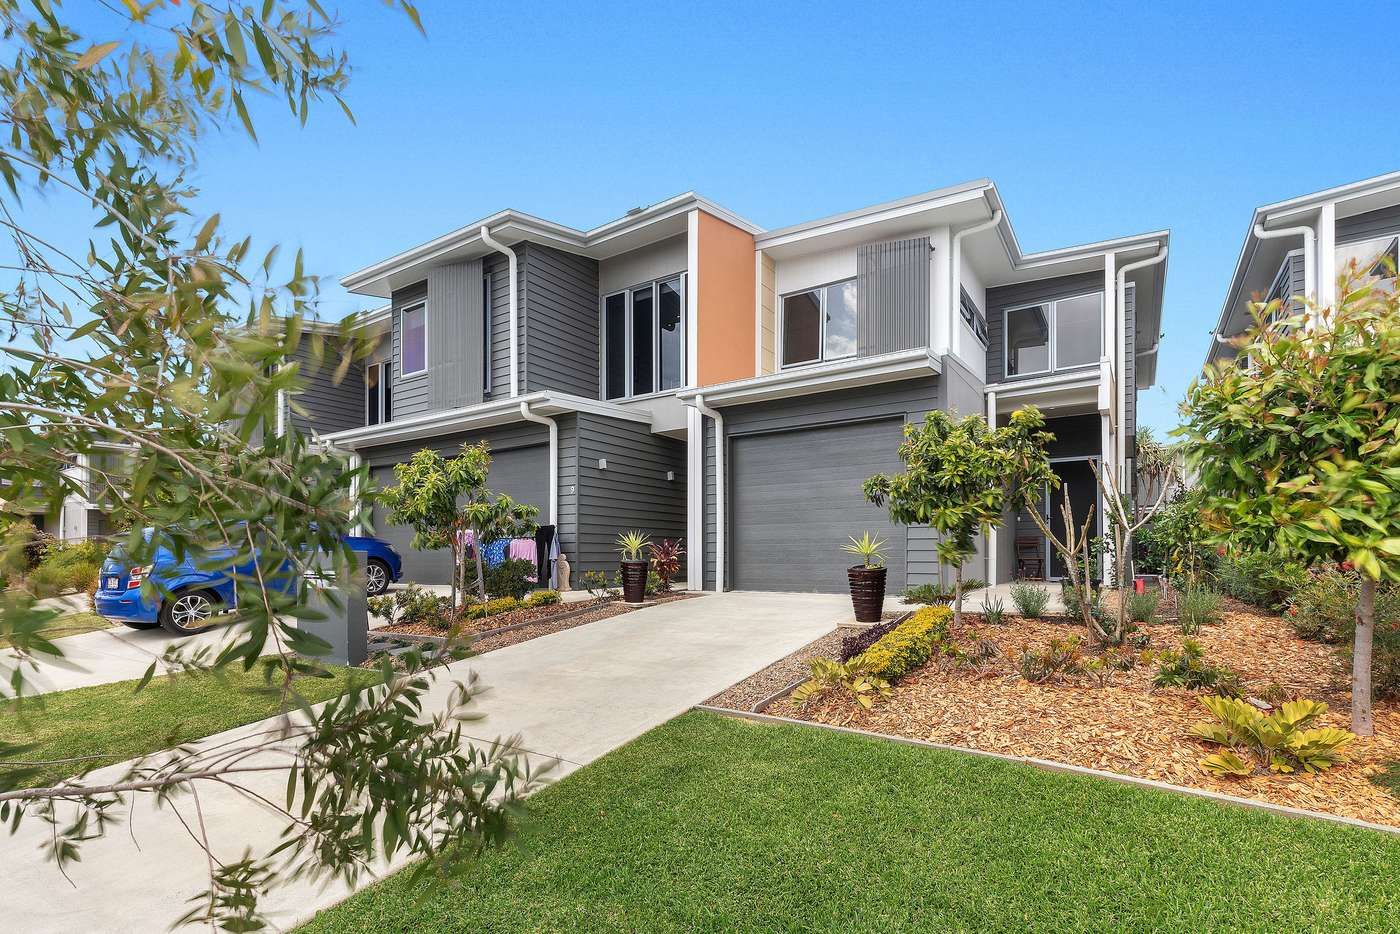 Main view of Homely townhouse listing, Unit 8/19 Riviera Pl, Mountain Creek QLD 4557